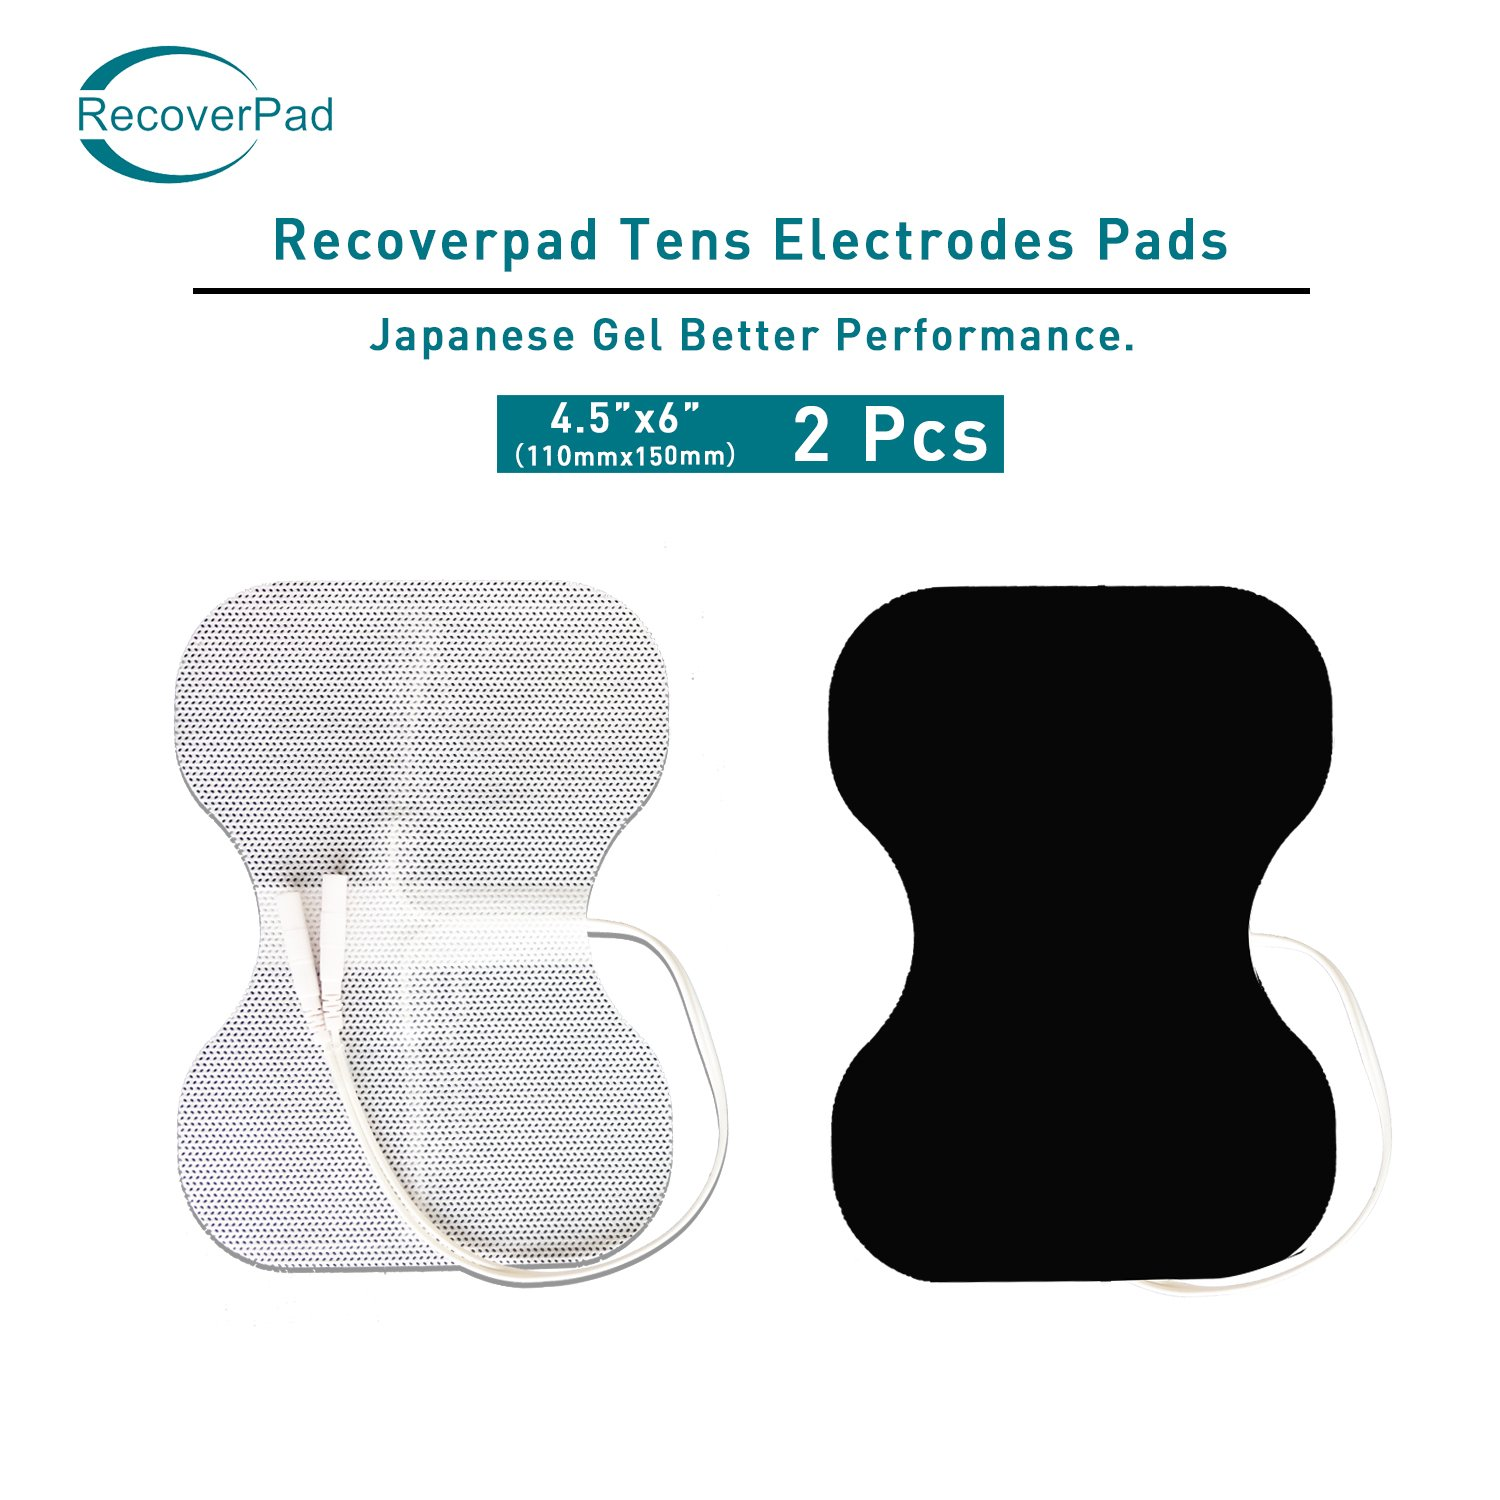 RecoverPad 4.5X6 Large Butterfly TENS Unit Pads,2-Pack 3nd Gen Japanese Gel Latex-Free Replacement Electrode(FDA 510K Cleared) with Upgraded Self-Stick Performance,Skin Friendly and Non-Irritating